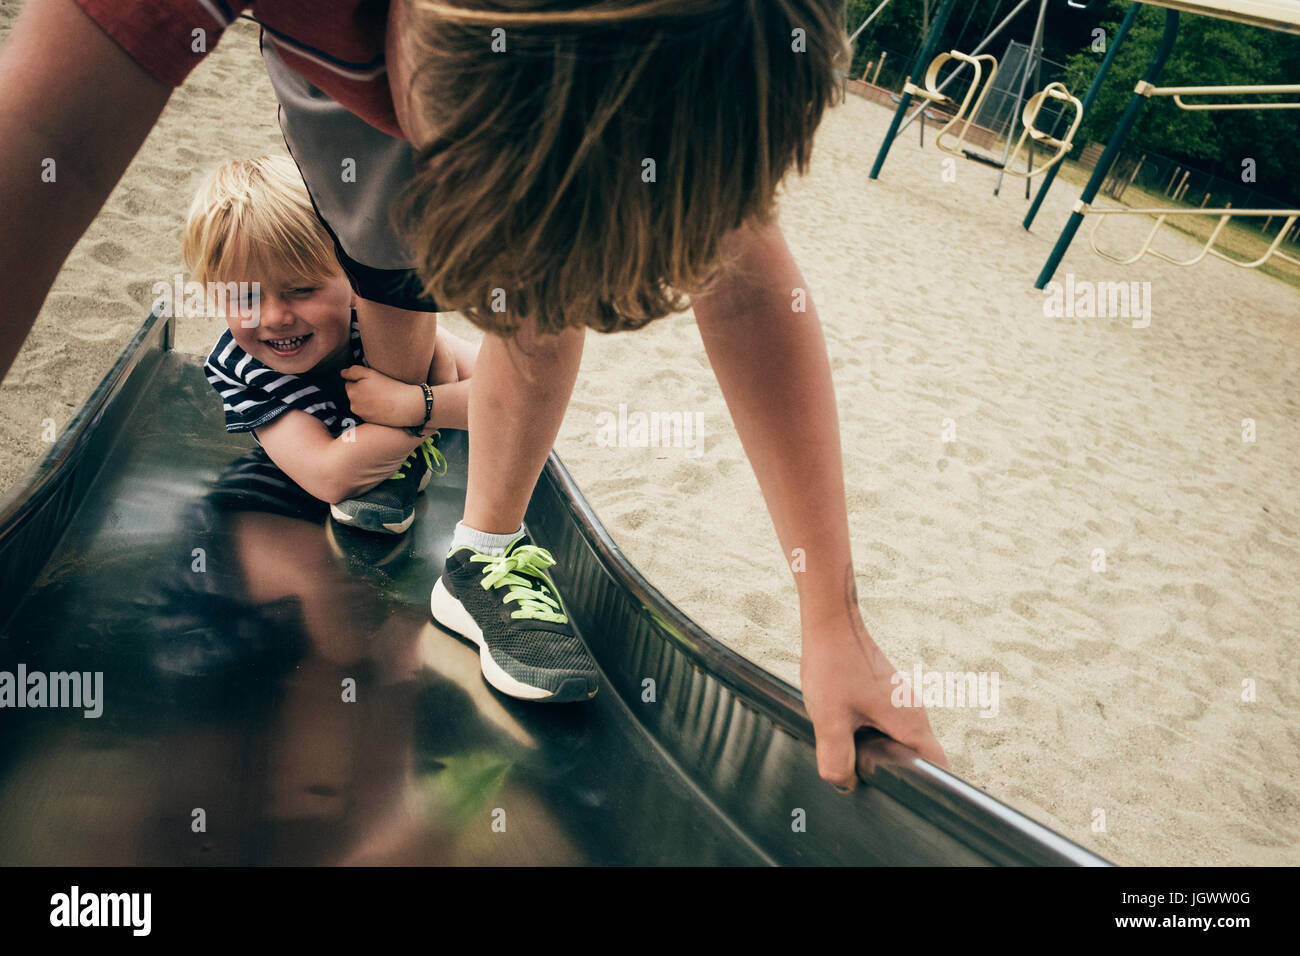 Two boys playing on playground slide, elevated view - Stock Image